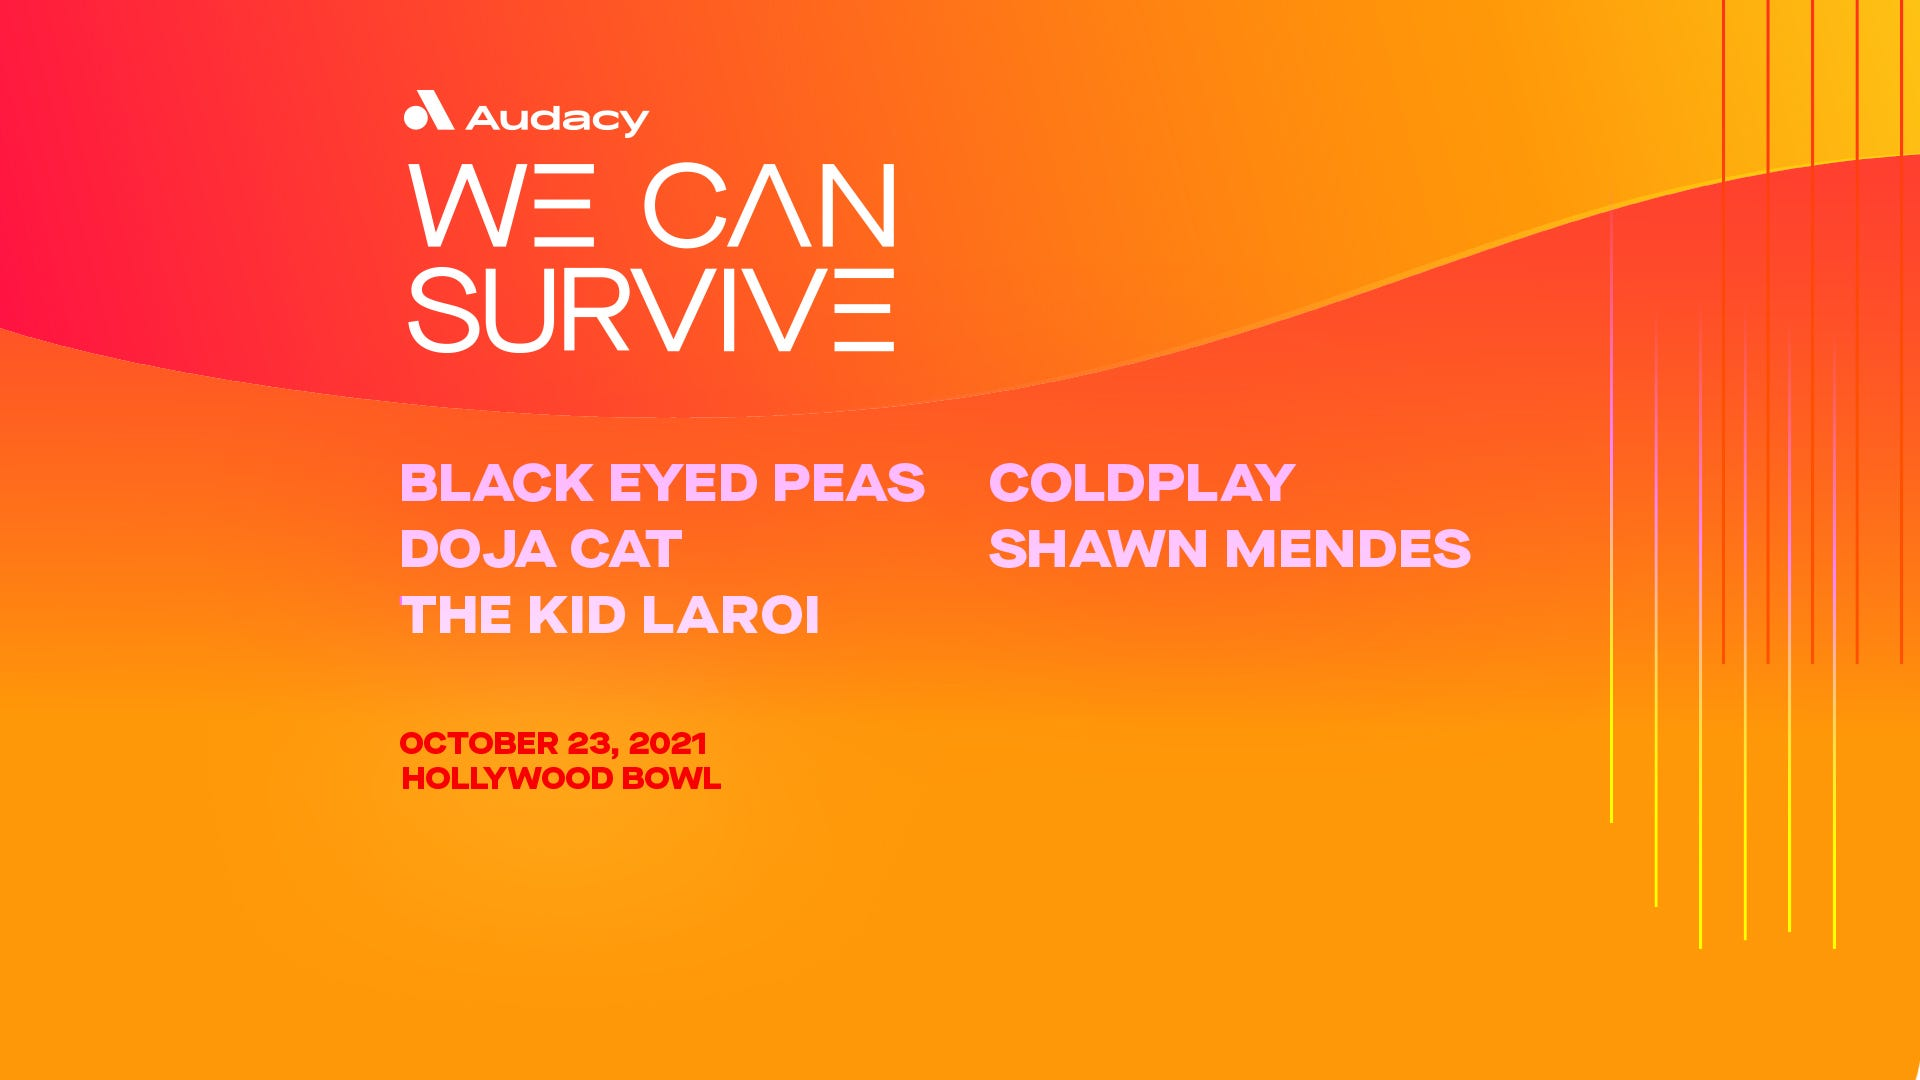 Audacy's 'We Can Survive' returns to the Hollywood Bowl on October 23